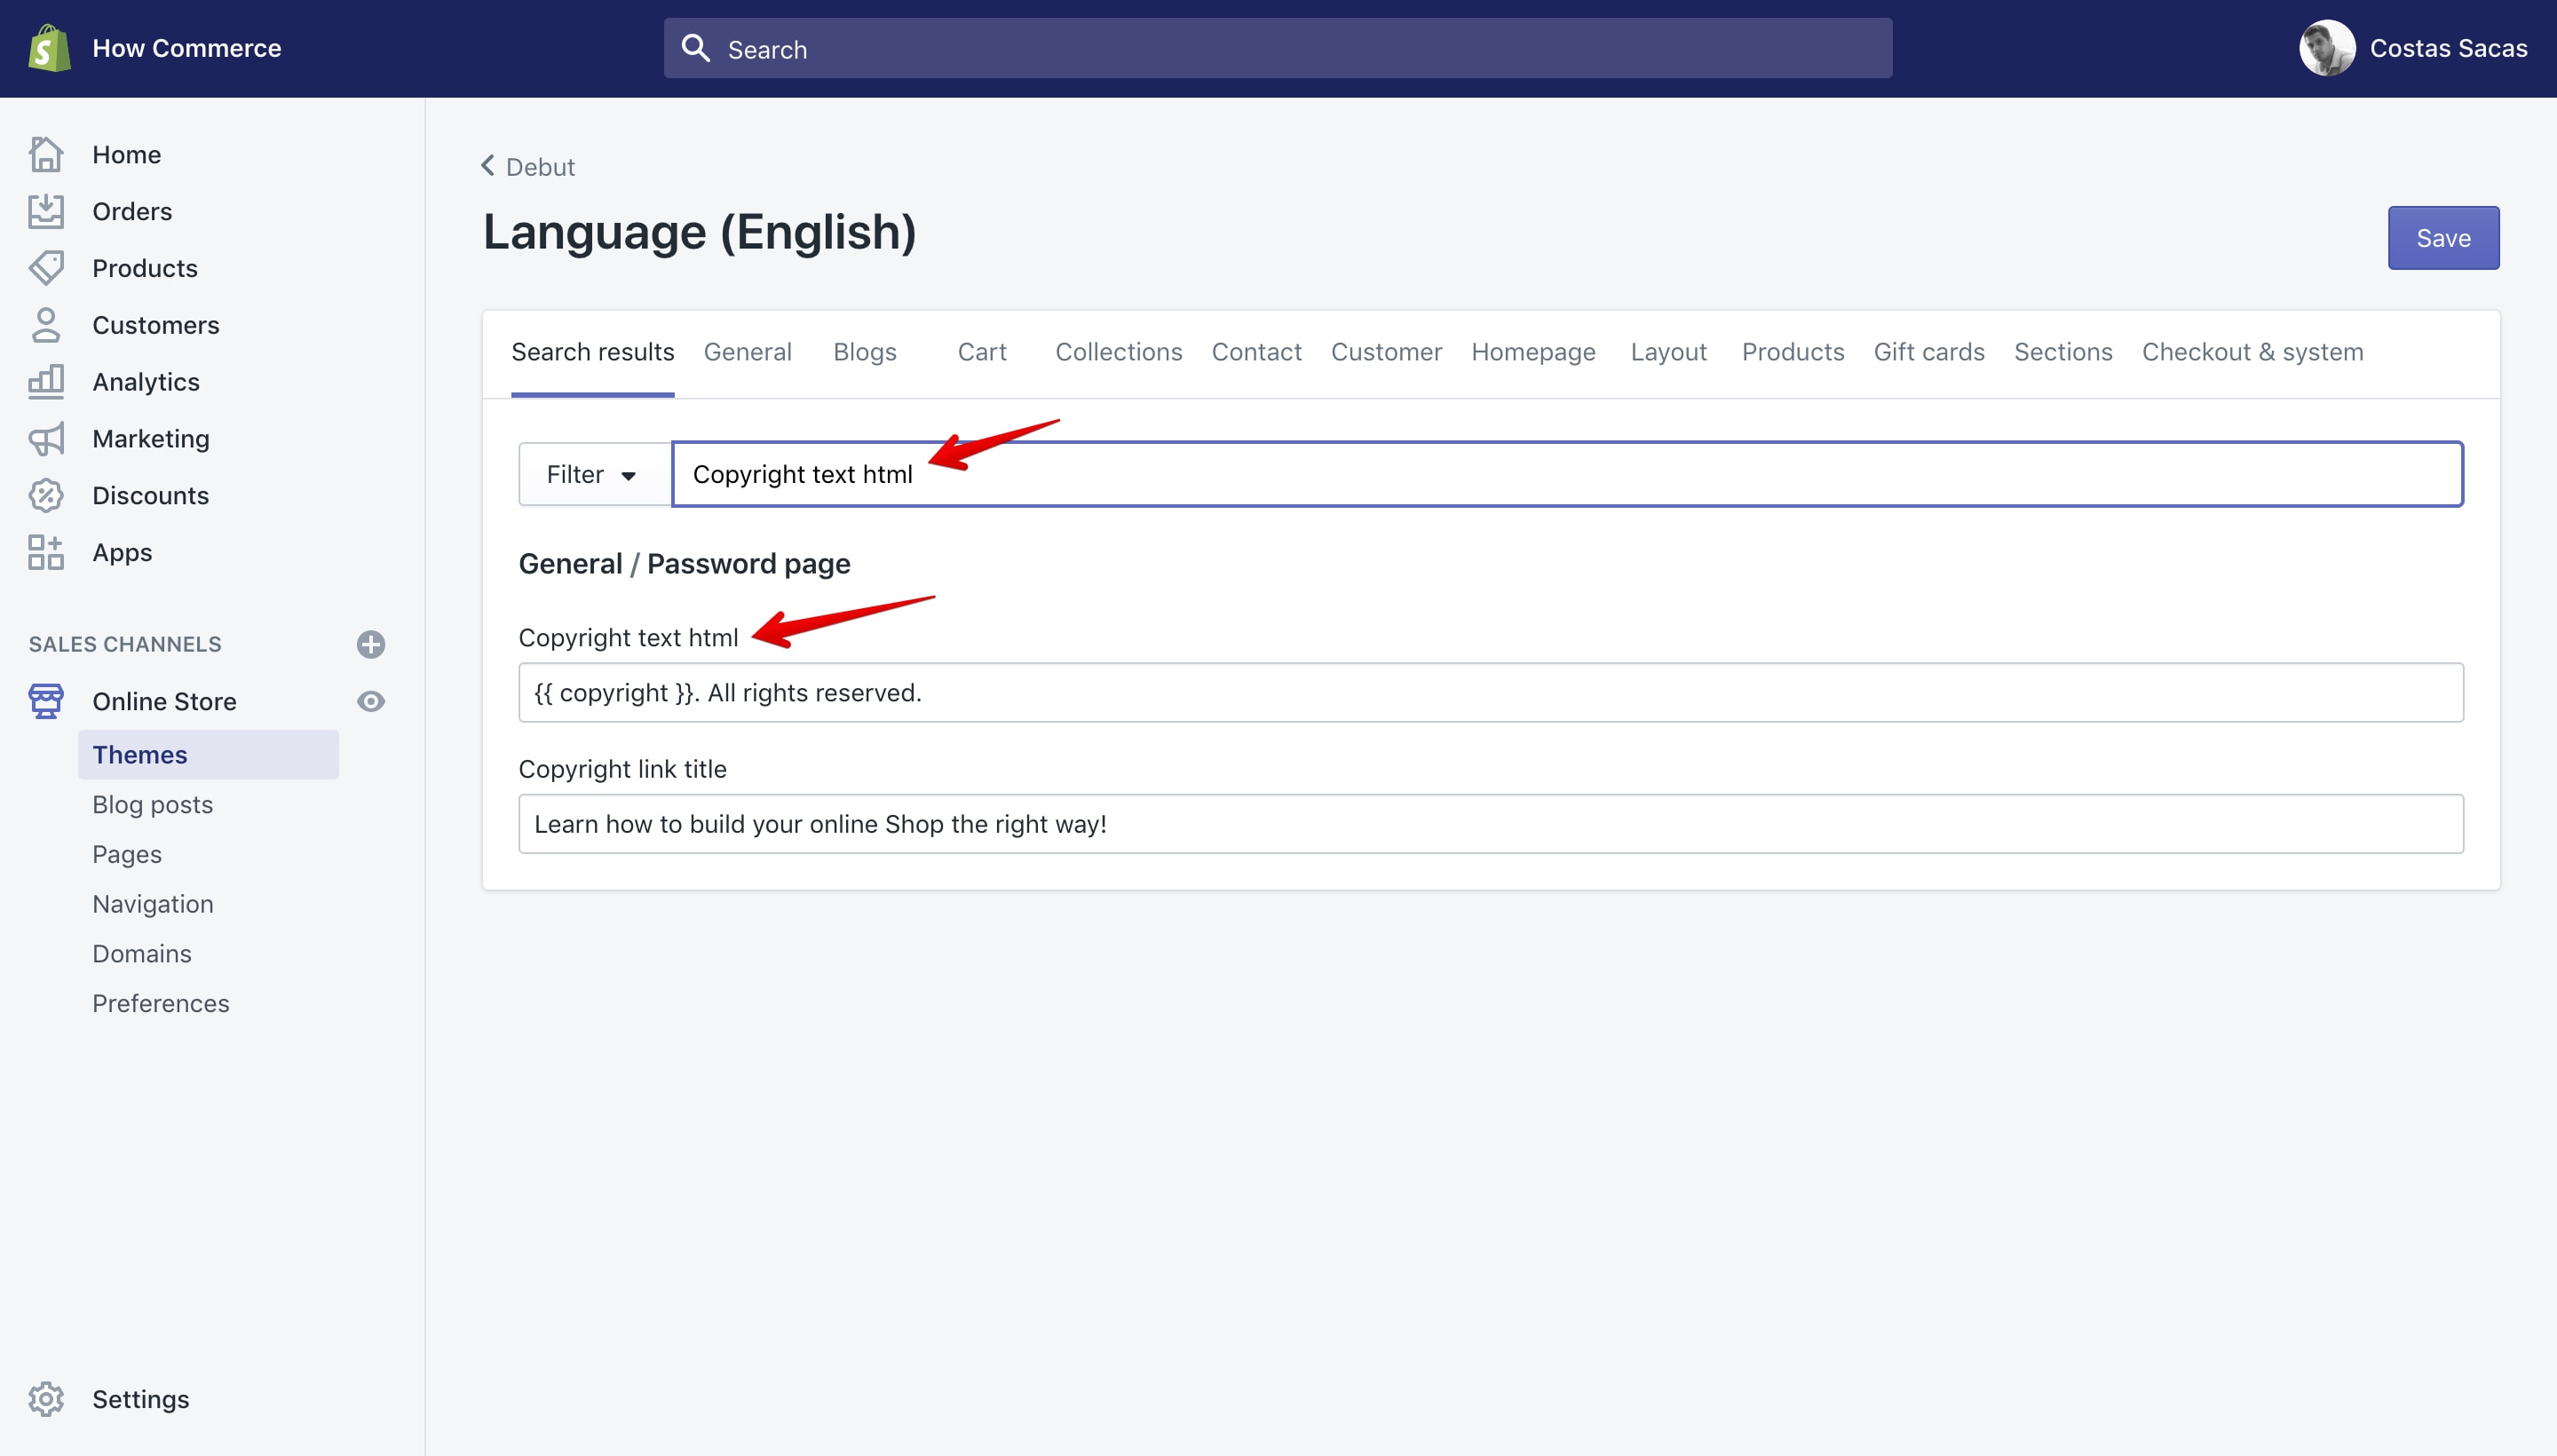 """Debut theme """"Copyright text html"""" translation key in the """"Language"""" panel."""